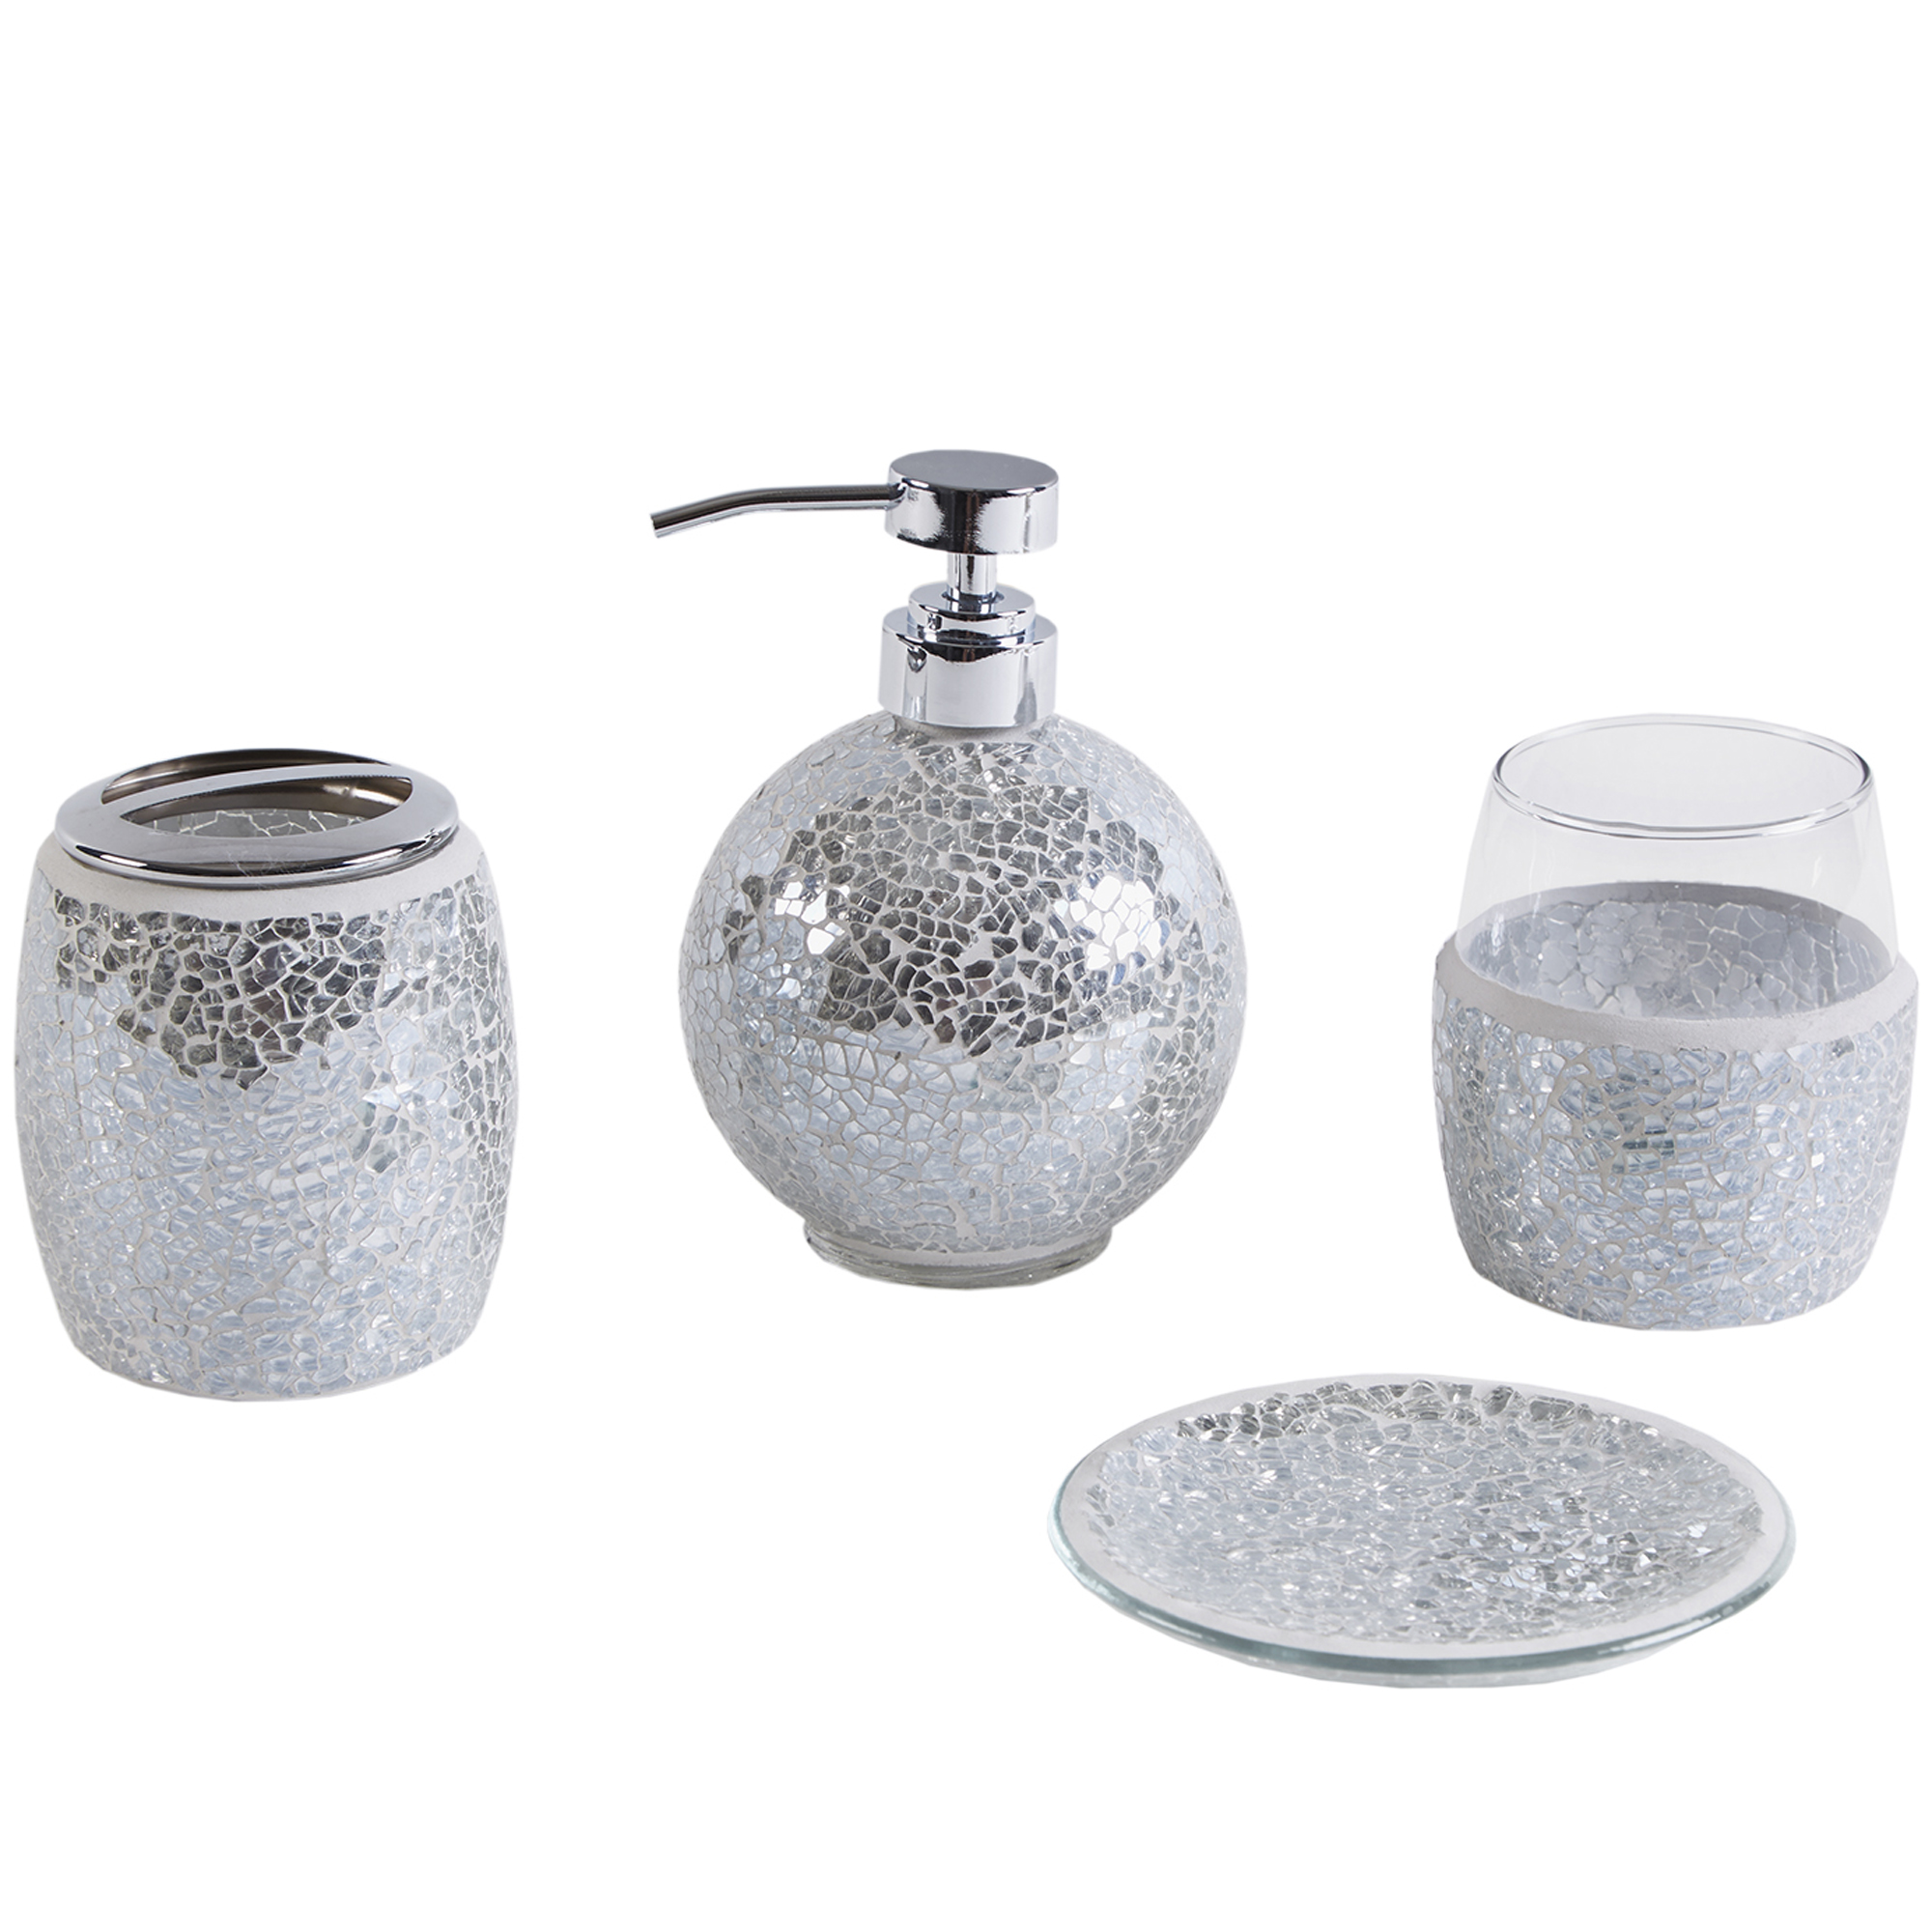 Home Essence Mosaic Four-Piece Bath Accessory Set by E&E Co.Ltd